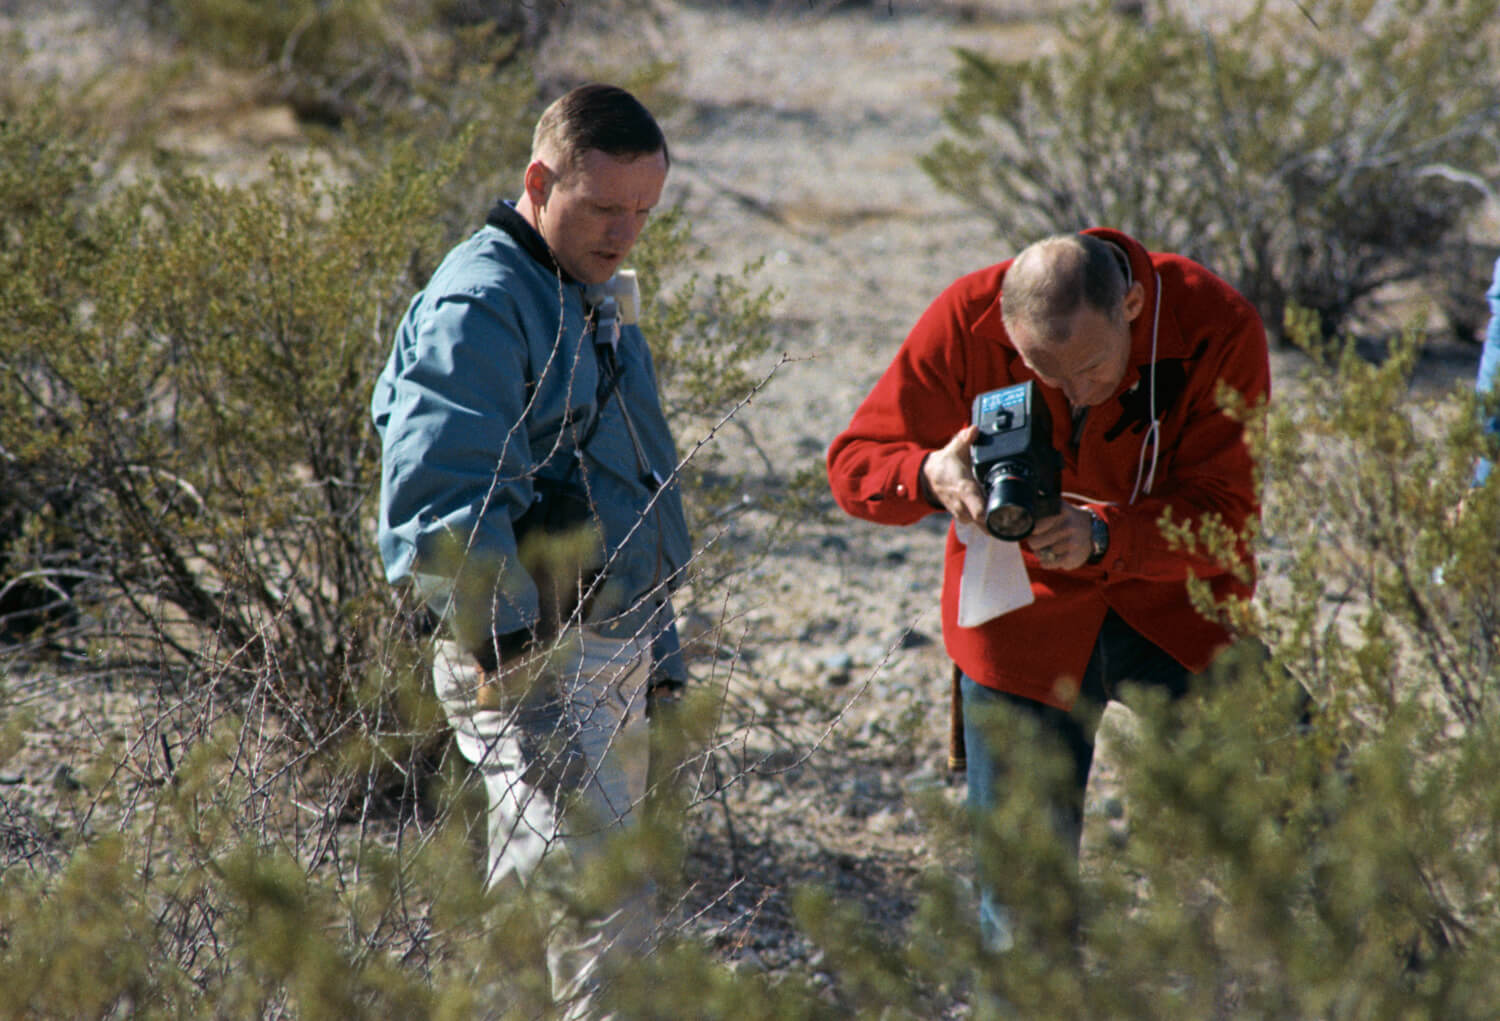 Neil and Buzz document a sample during a field trip at Sierra Blanca in west Texas (Nasa: AP11-S69-25908)